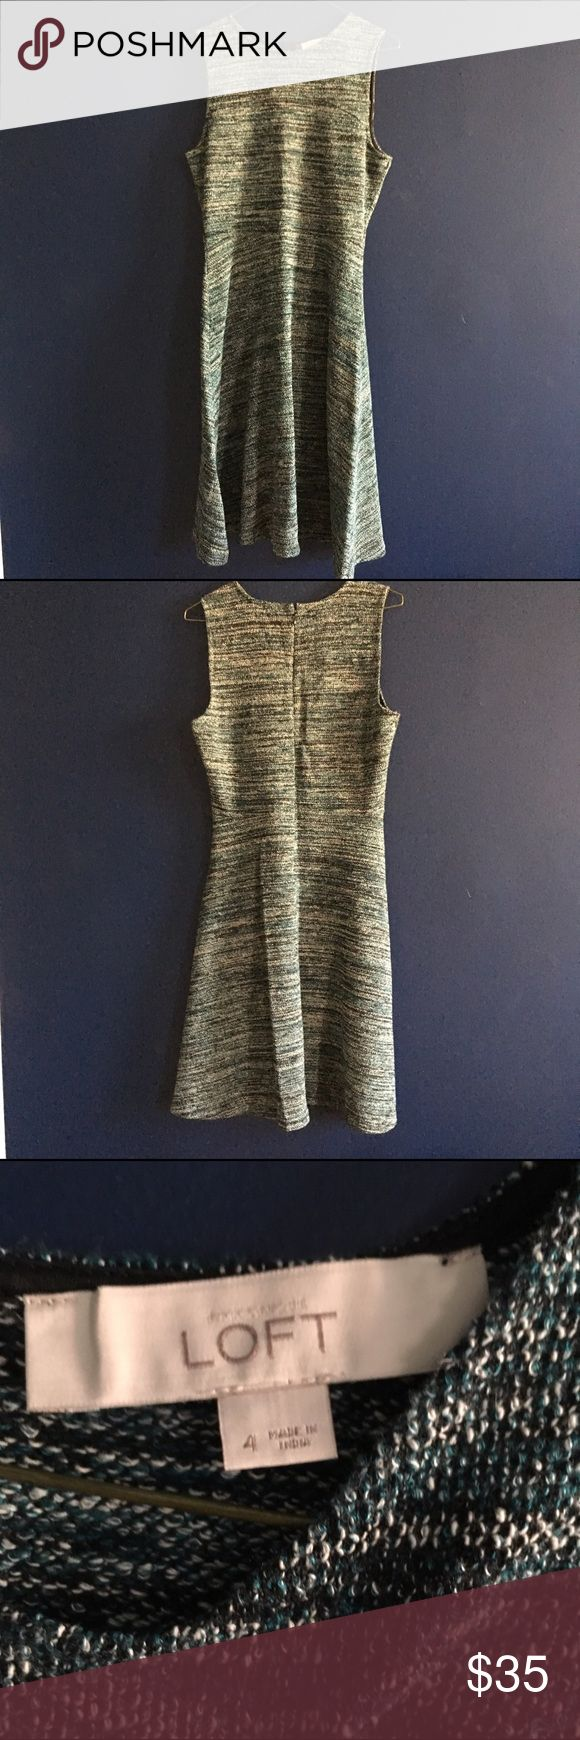 Perfect everyday dress- LOFT The perfect everyday occasion dress from LOFT. Cotton polyester blend, black, white, gray and blue pattern. Flattering tailored waist, falls just below the knee. Worn gently, excellent condition. LOFT Dresses Midi